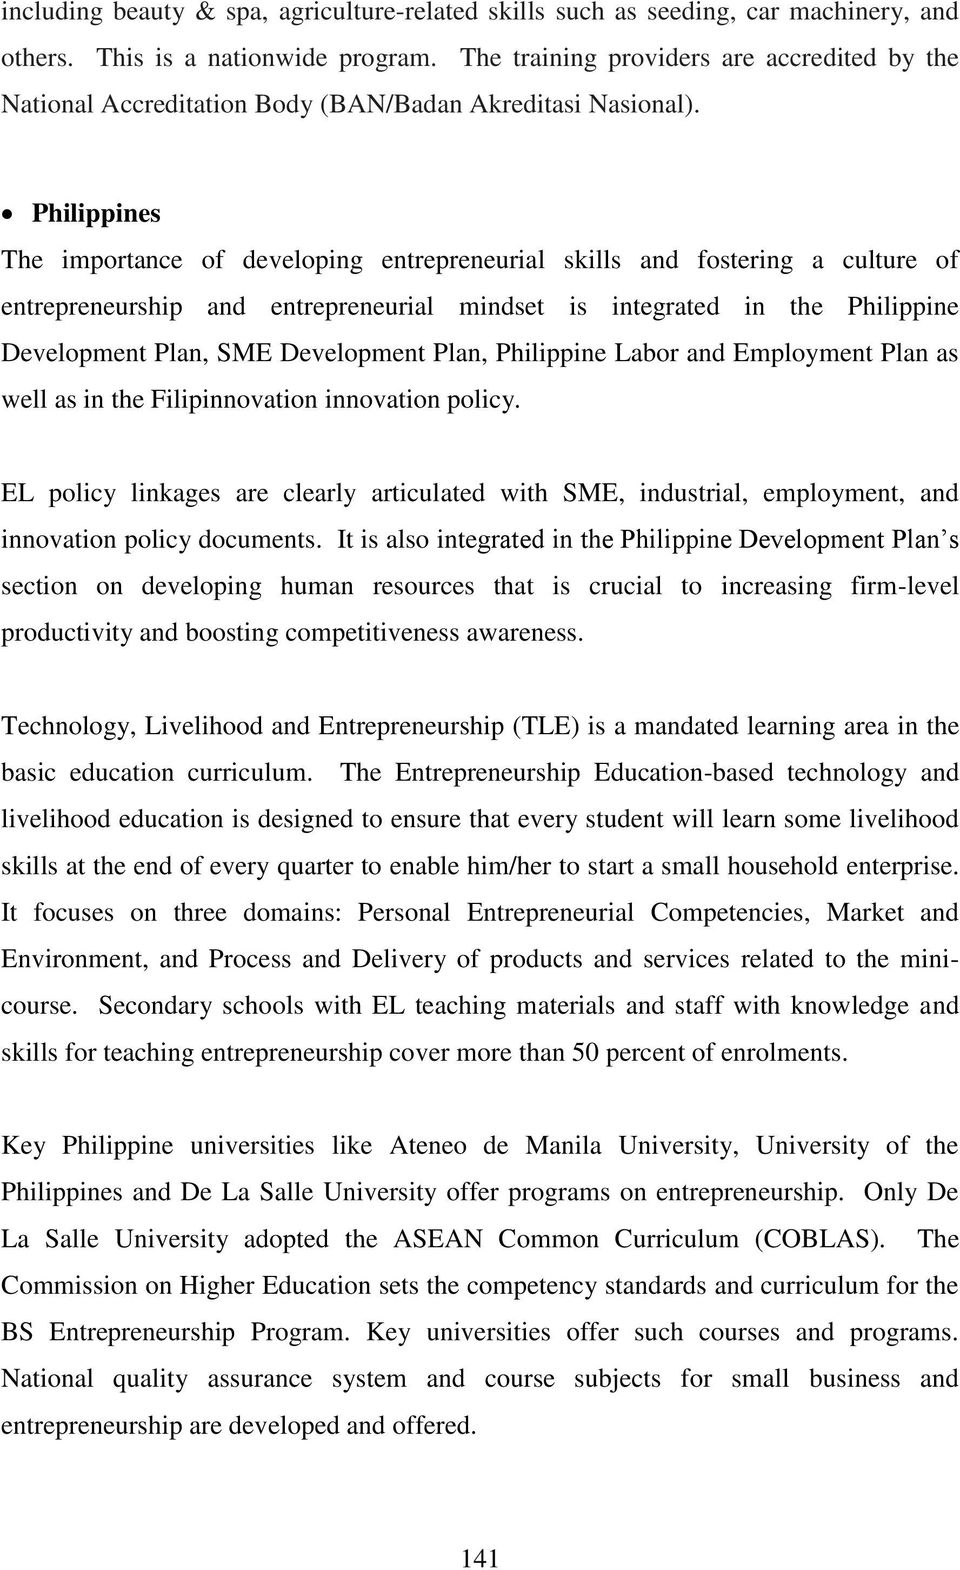 Philippines The importance of developing entrepreneurial skills and fostering a culture of entrepreneurship and entrepreneurial mindset is integrated in the Philippine Development Plan, SME